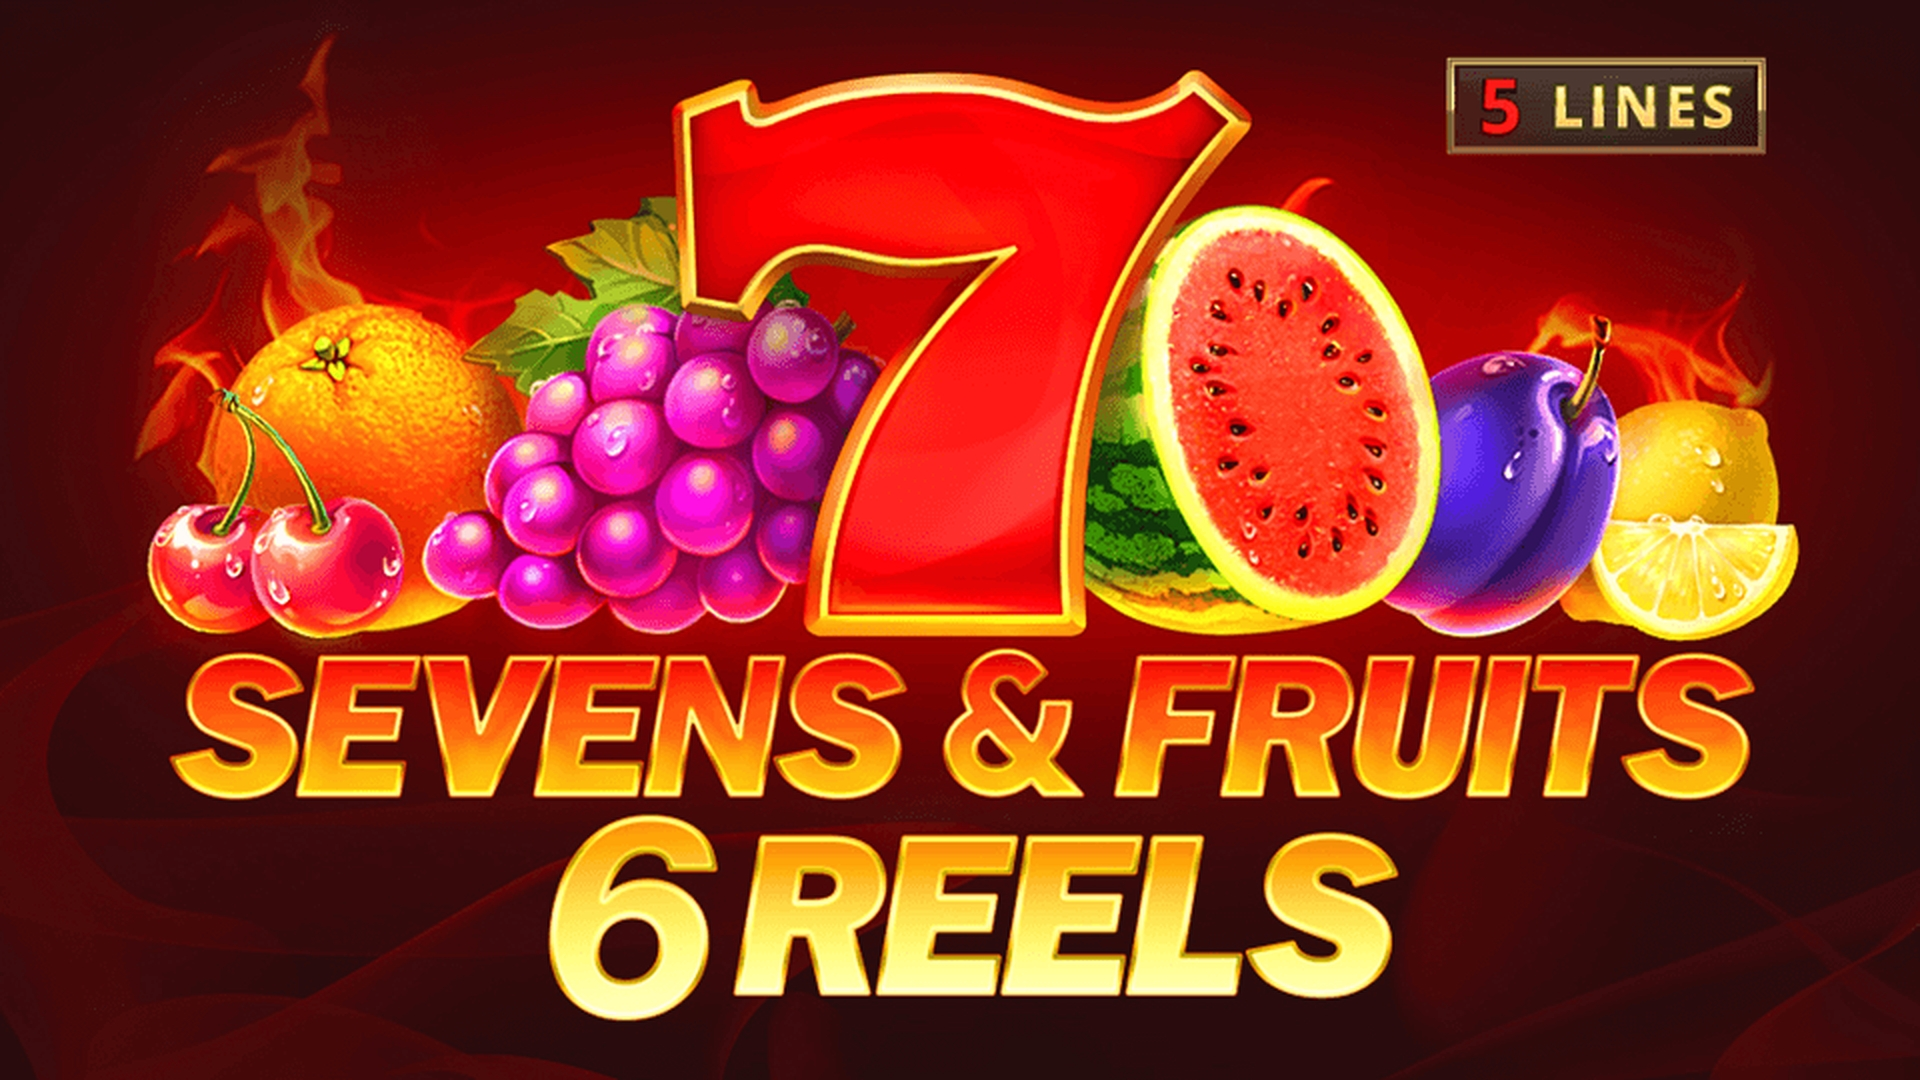 Reels in Sevens and Fruits: 6 Reels Slot Game by Playson